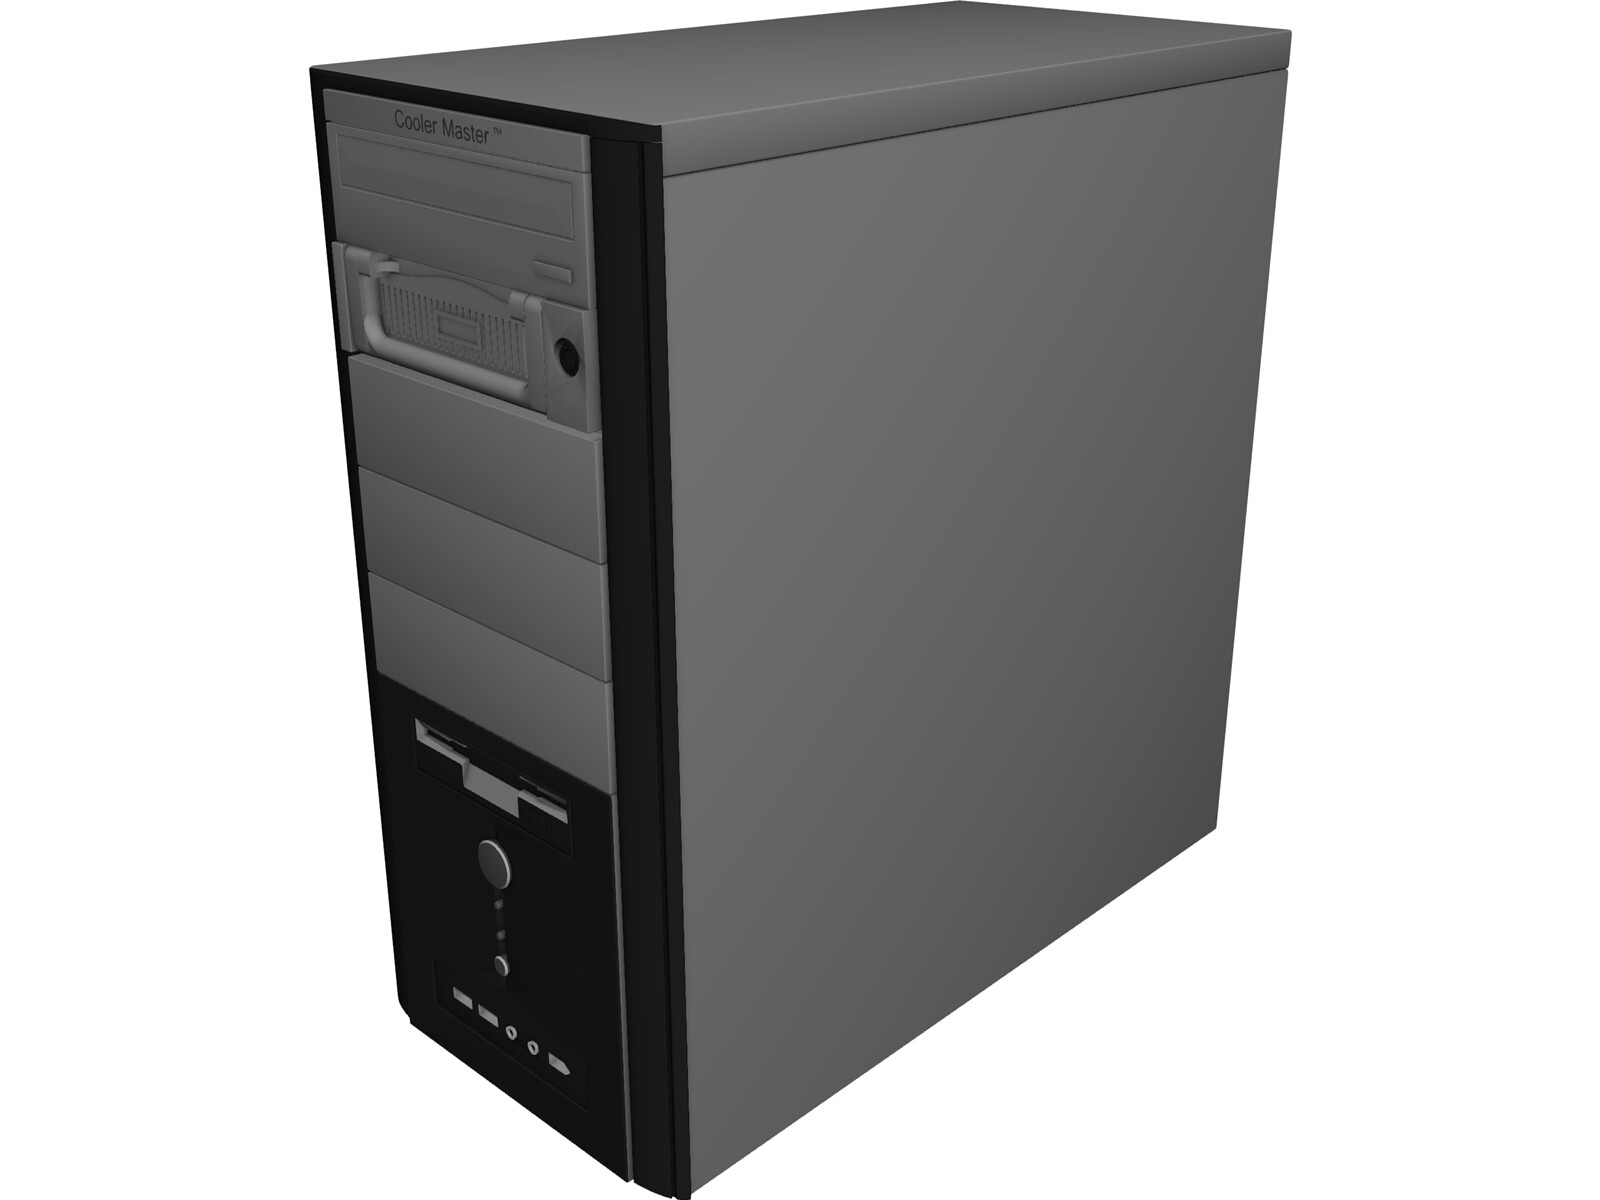 Coolermaster PC 3D Model